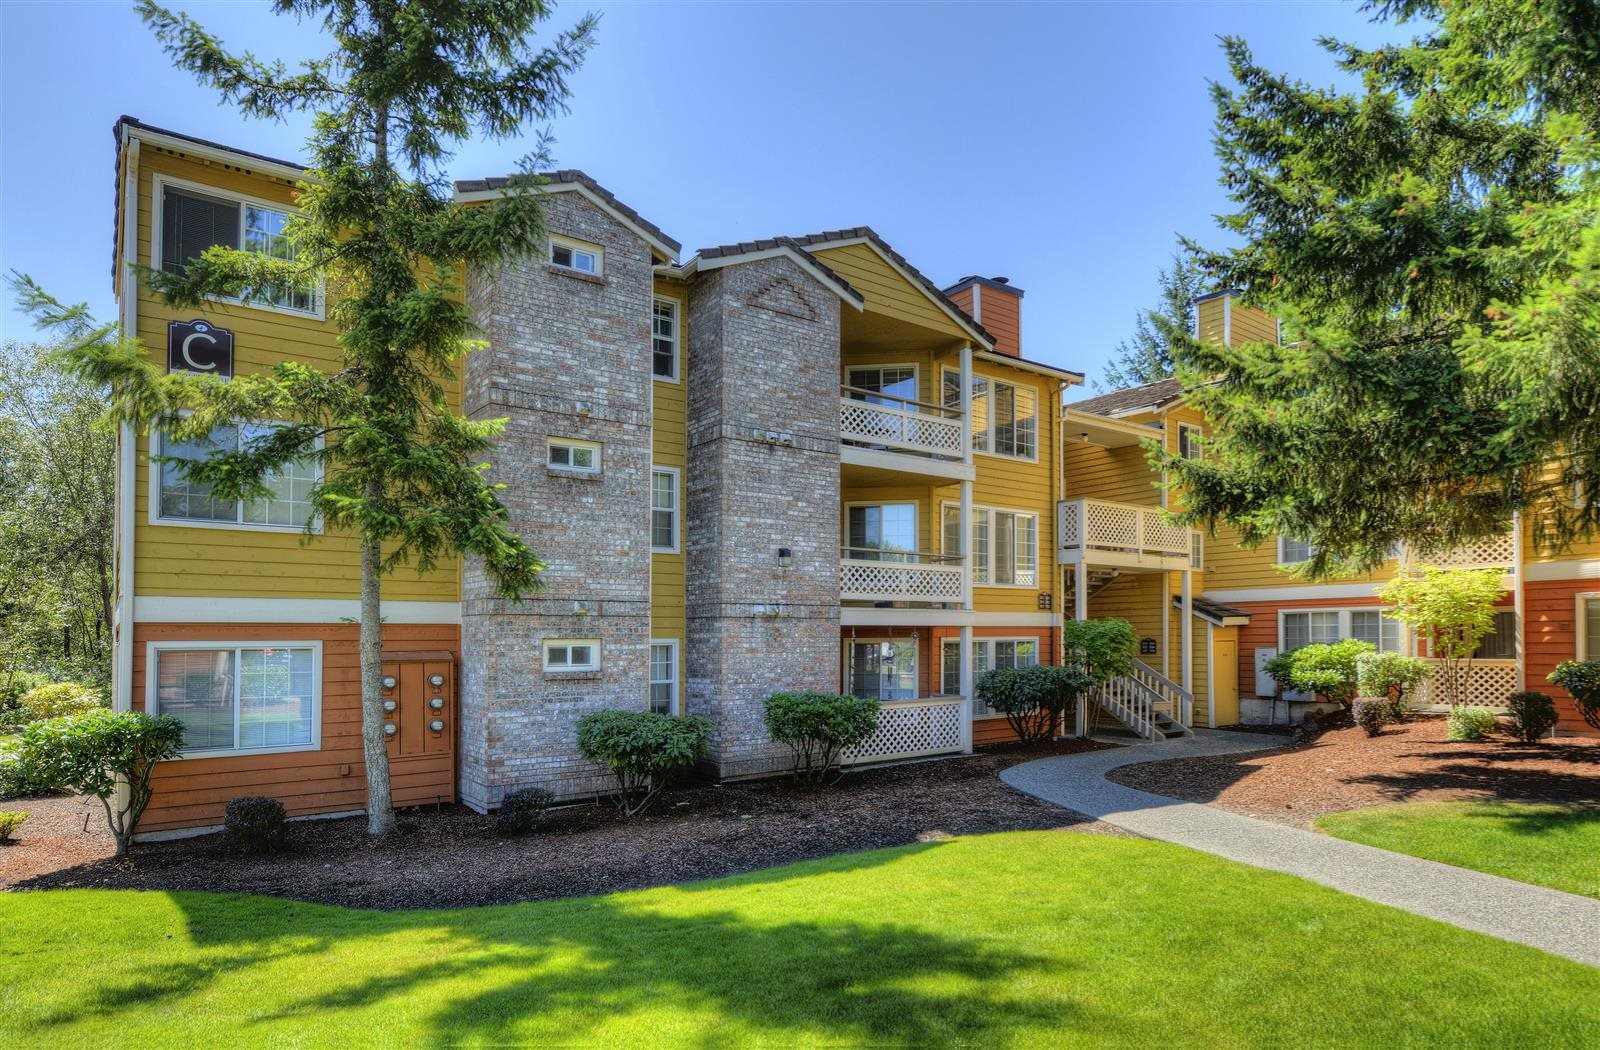 Beautiful Lush Green Surroundings at Heronfield Apartments, Kirkland, WA, 98034